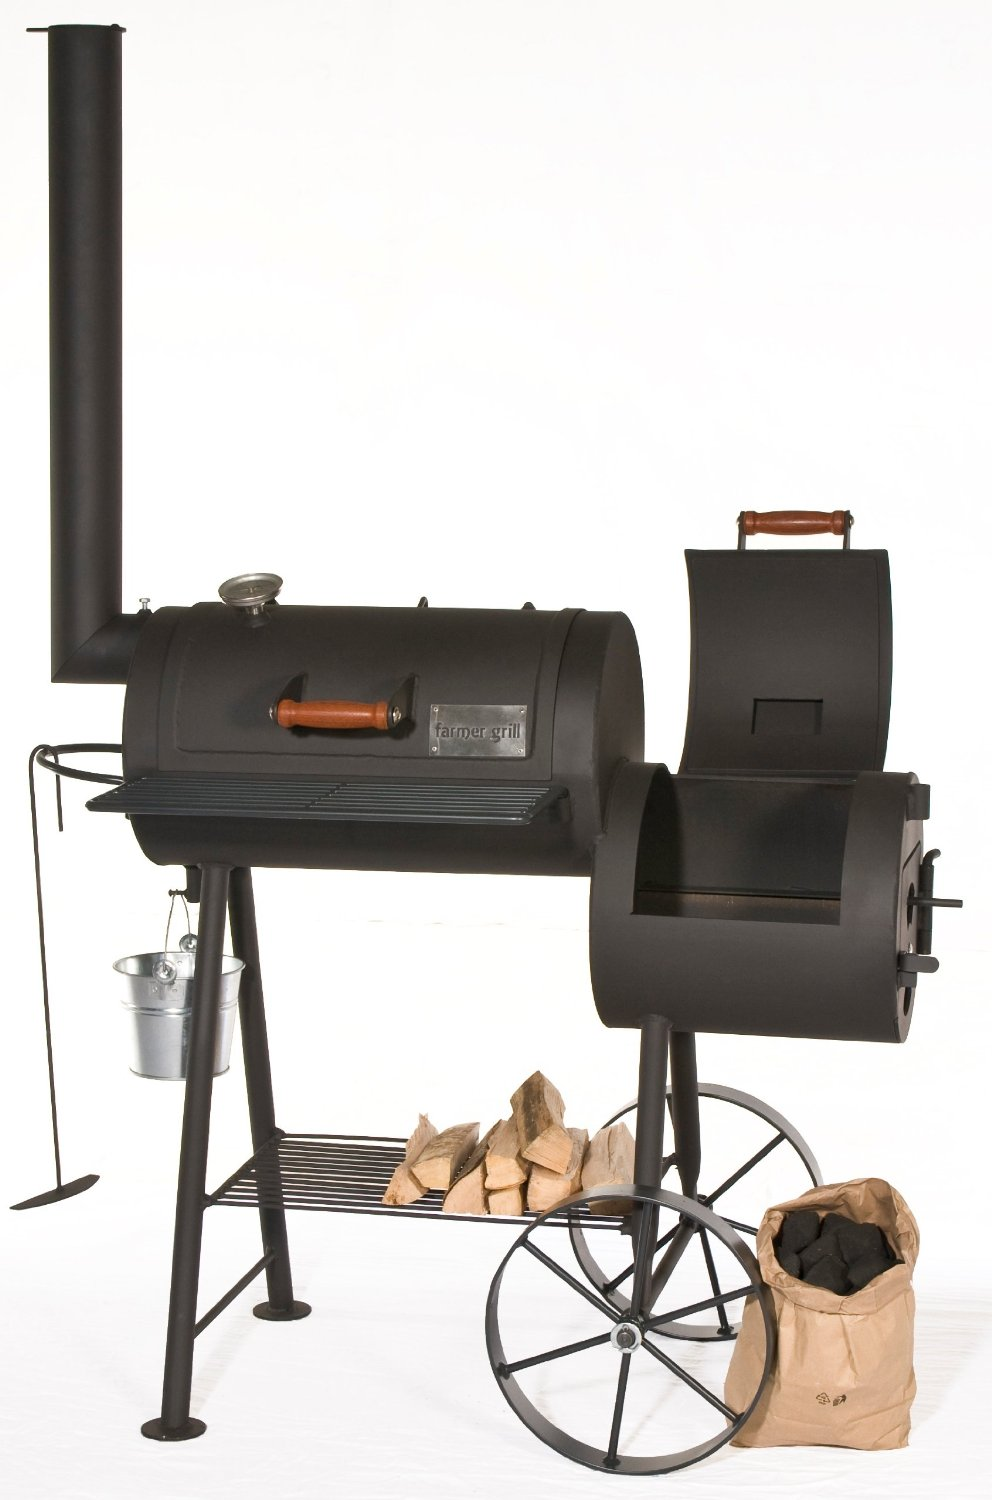 farmer smoker grill vergleich g nstig kaufen. Black Bedroom Furniture Sets. Home Design Ideas